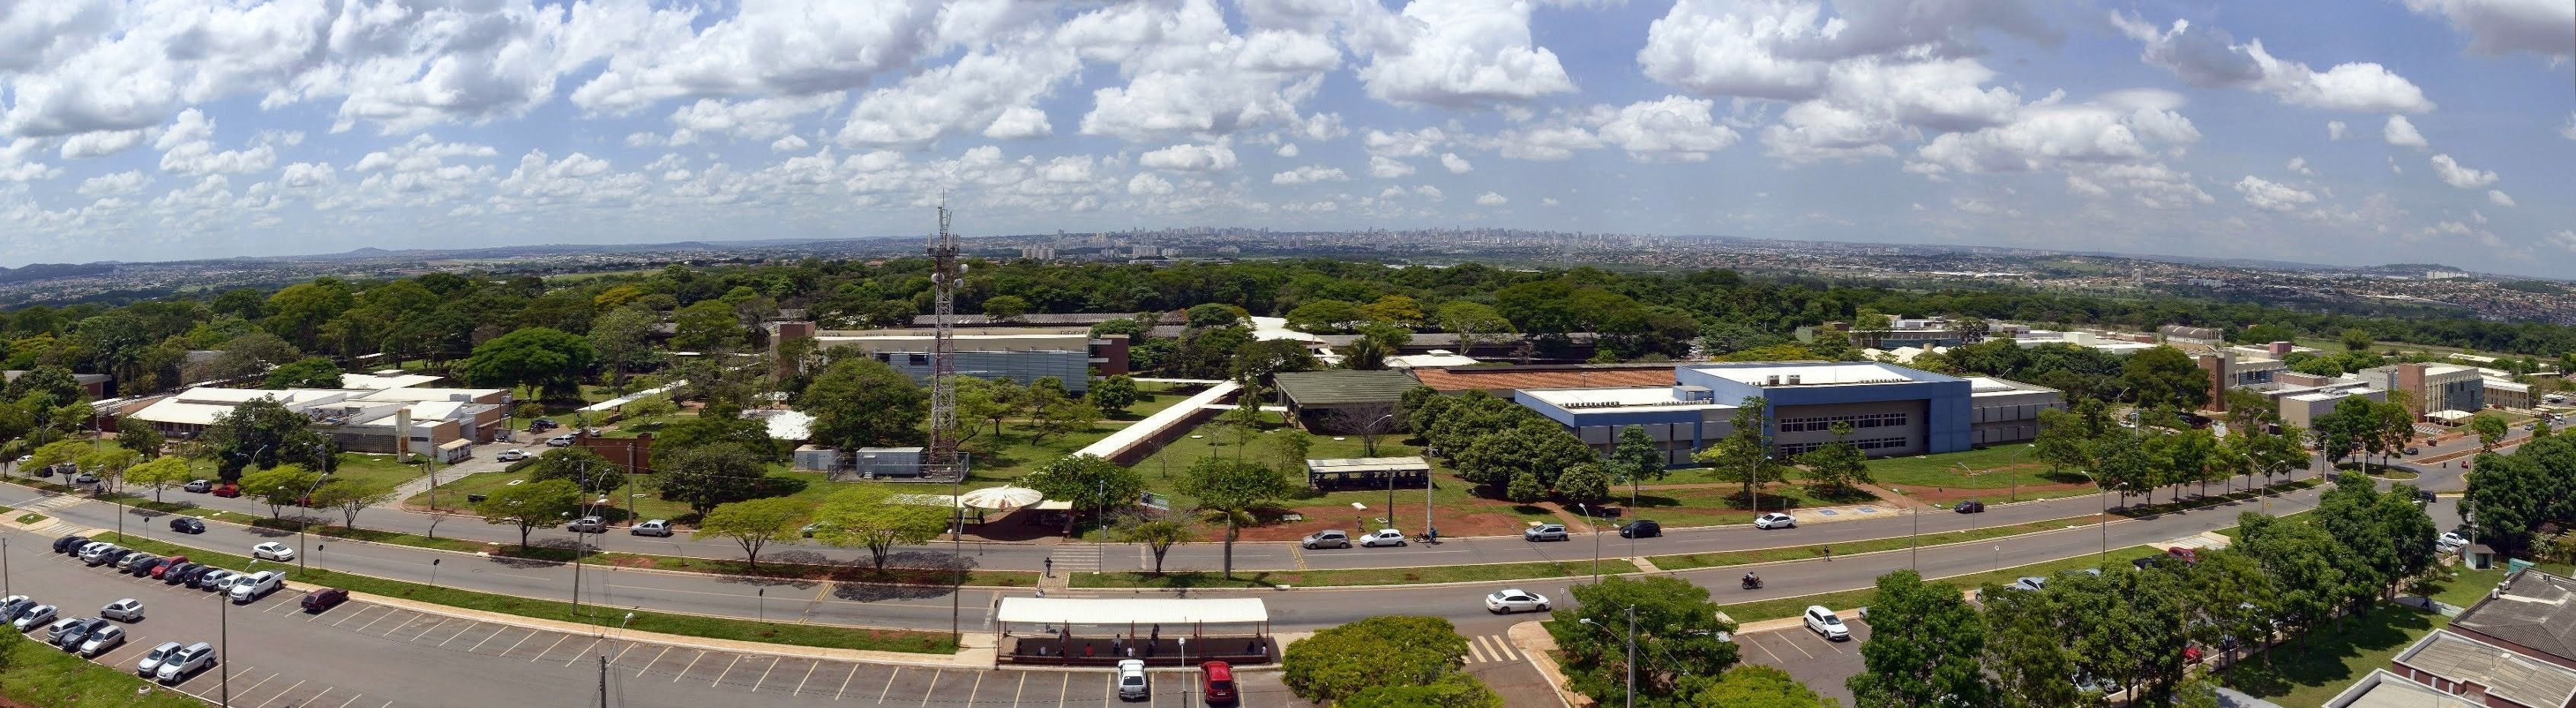 Panoramica do Campus